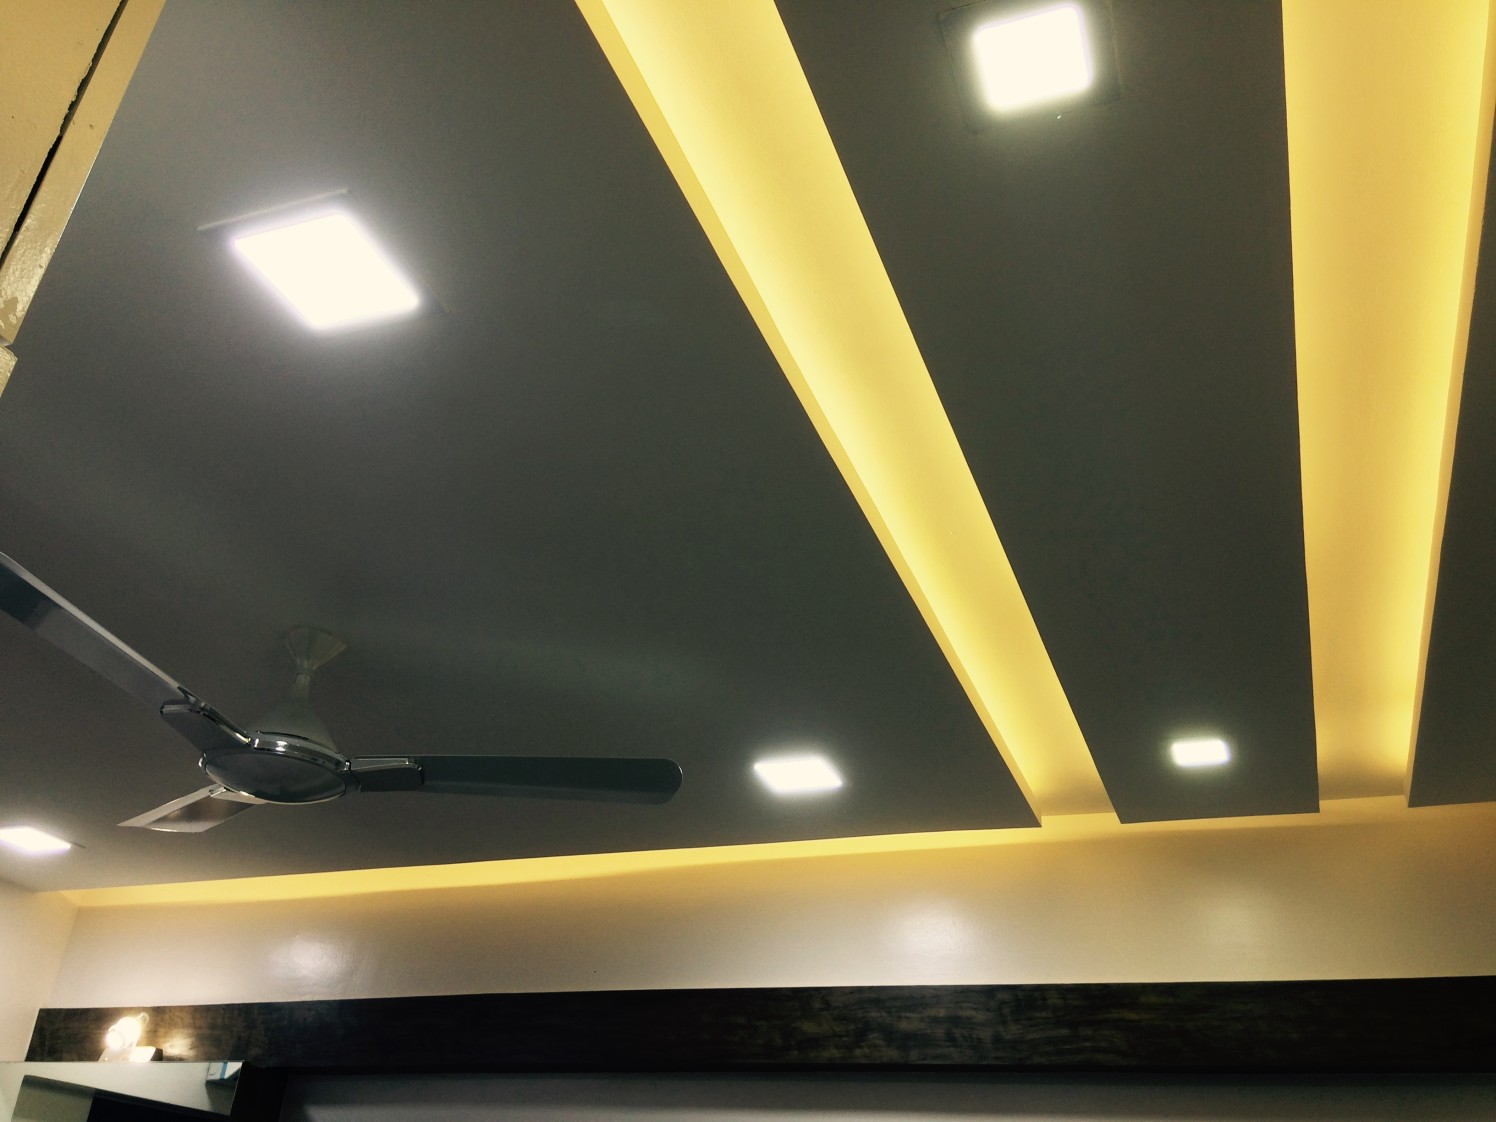 Modern Ceiling by Vaibhav Bhalekar Traditional Modern Contemporary | Interior Design Photos & Ideas